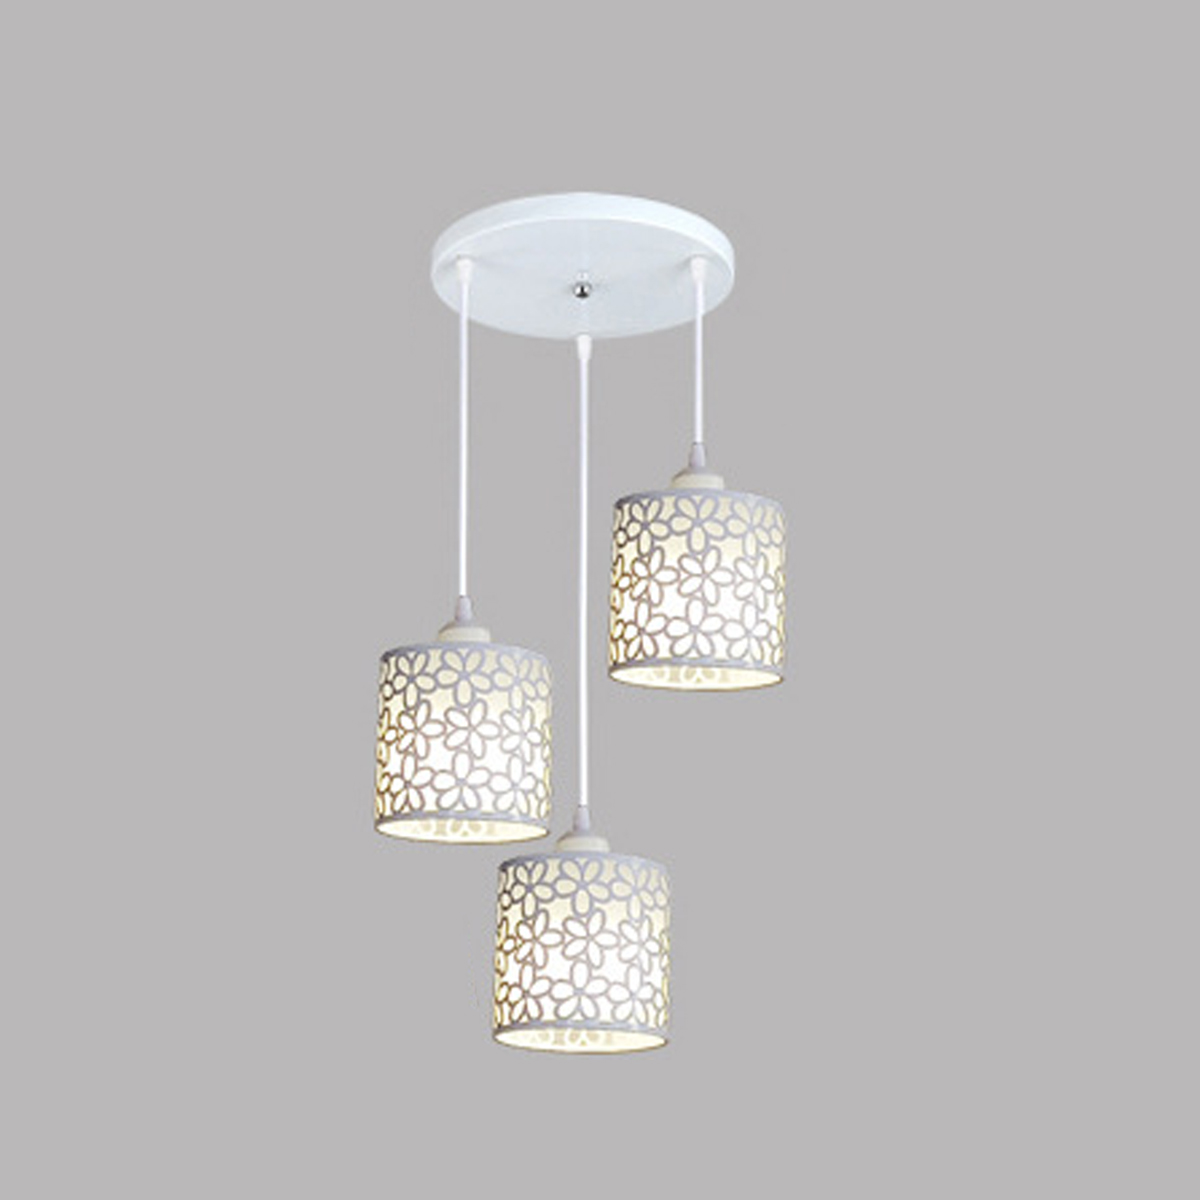 Modern Nordic LED <font><b>Pendant</b></font> <font><b>Lights</b></font> Fixtures iron Hollow Out Hanging <font><b>Pendant</b></font> Lamp Home Decoration for Dining Room Bedroom Shop Bar image